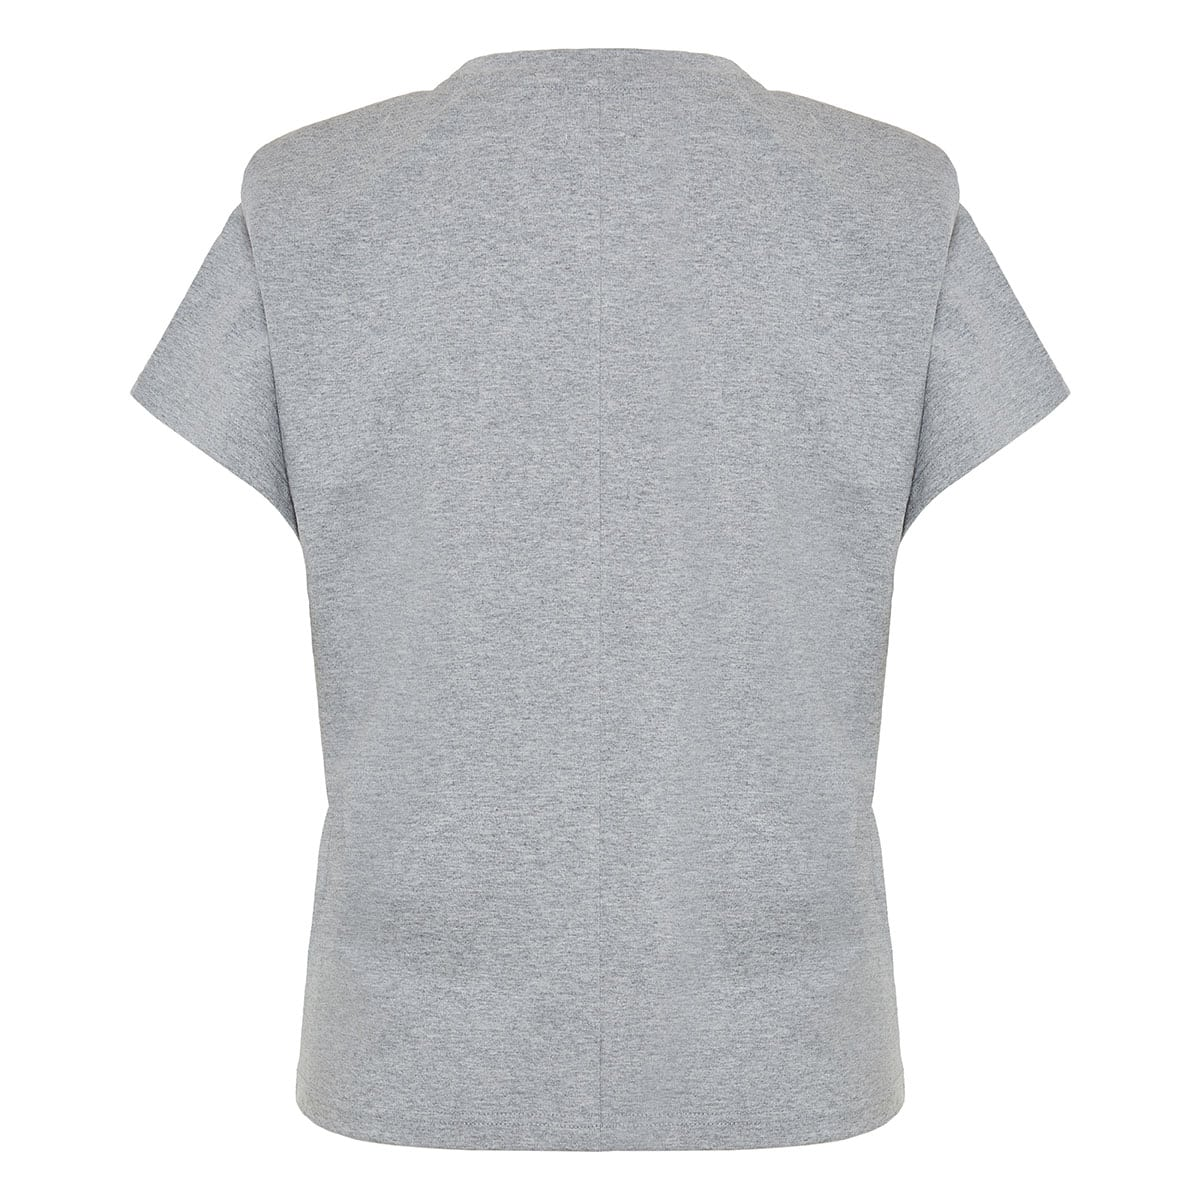 Belita knotted t-shirt